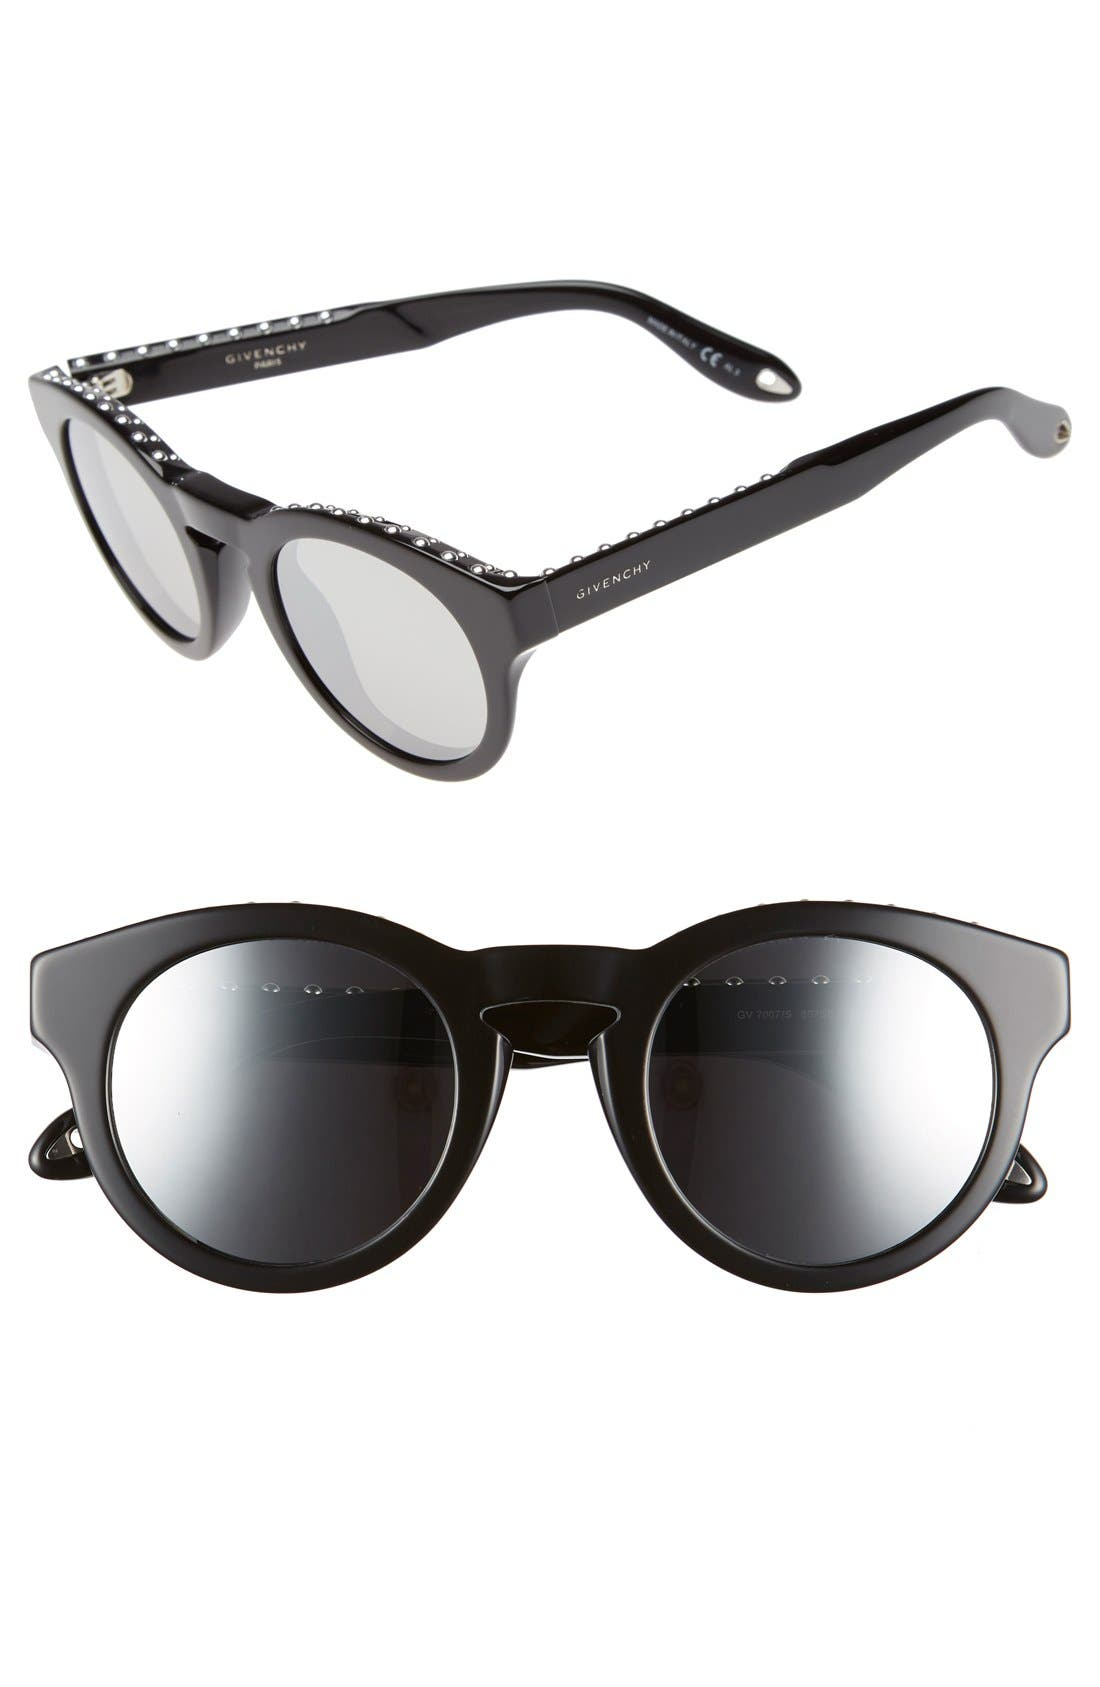 Main Image - Givenchy 48mm Round Sunglasses